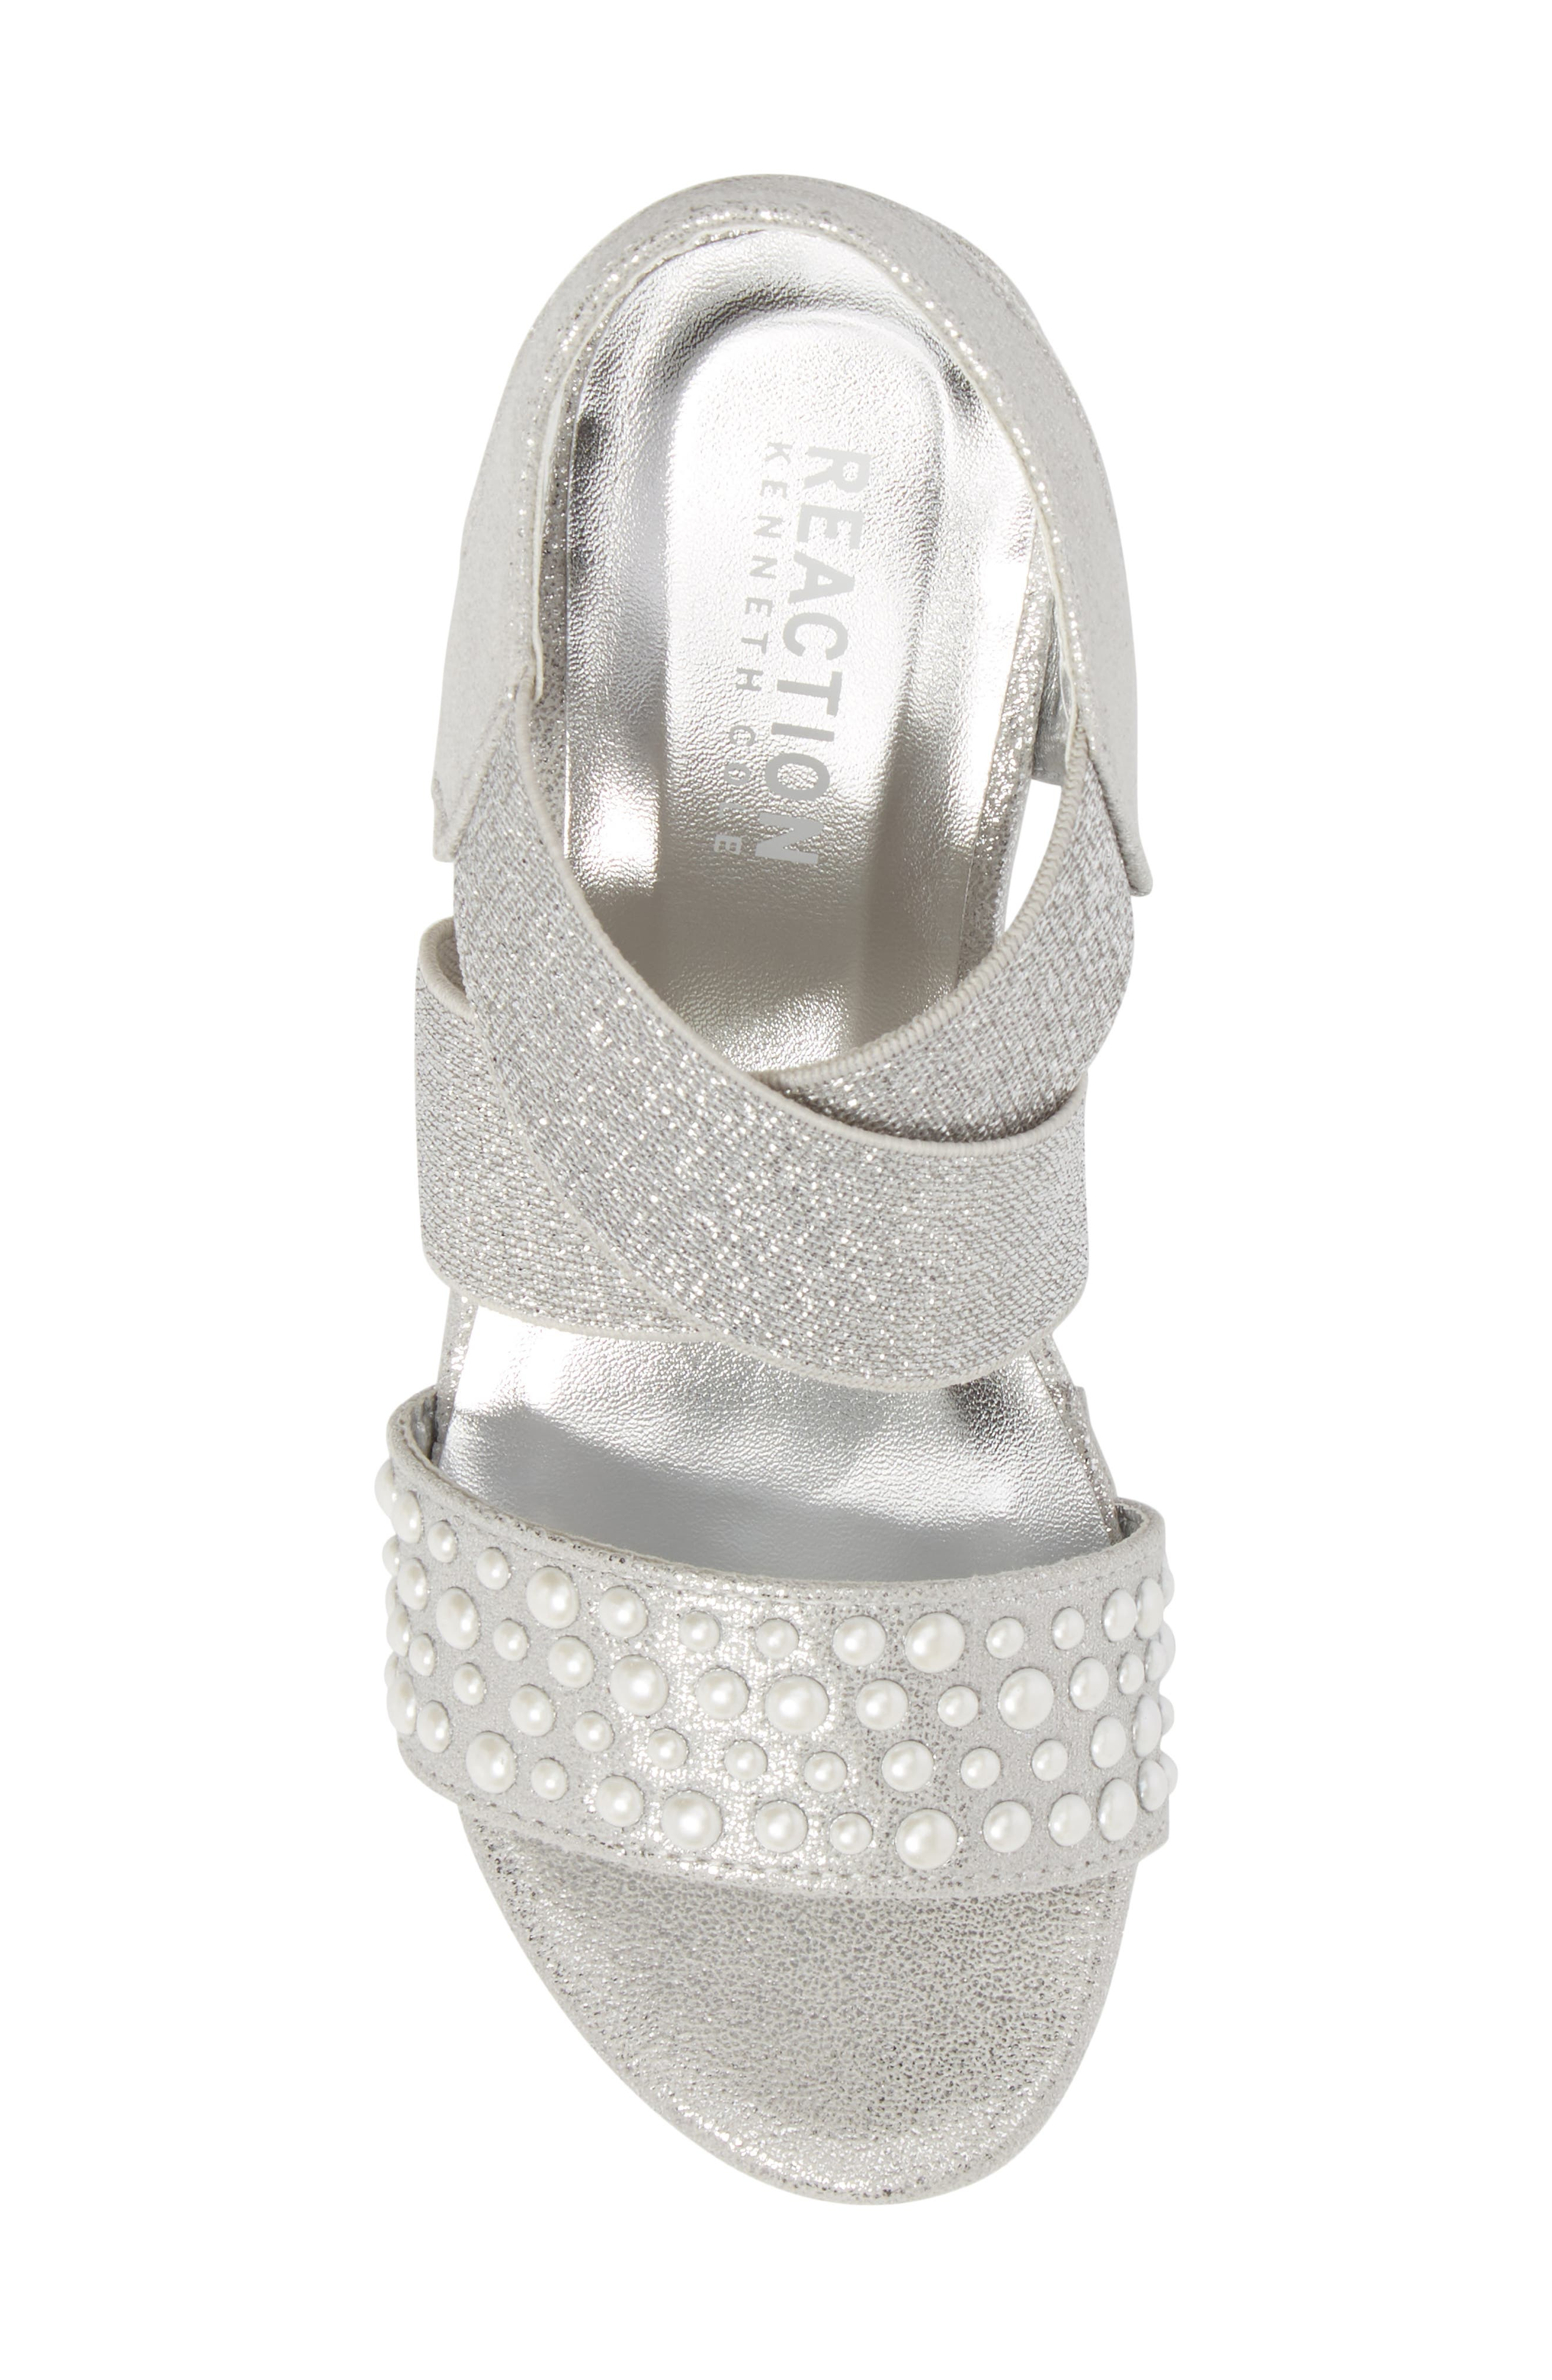 Reed Glimmer Wedge Sandal,                             Alternate thumbnail 5, color,                             Silver